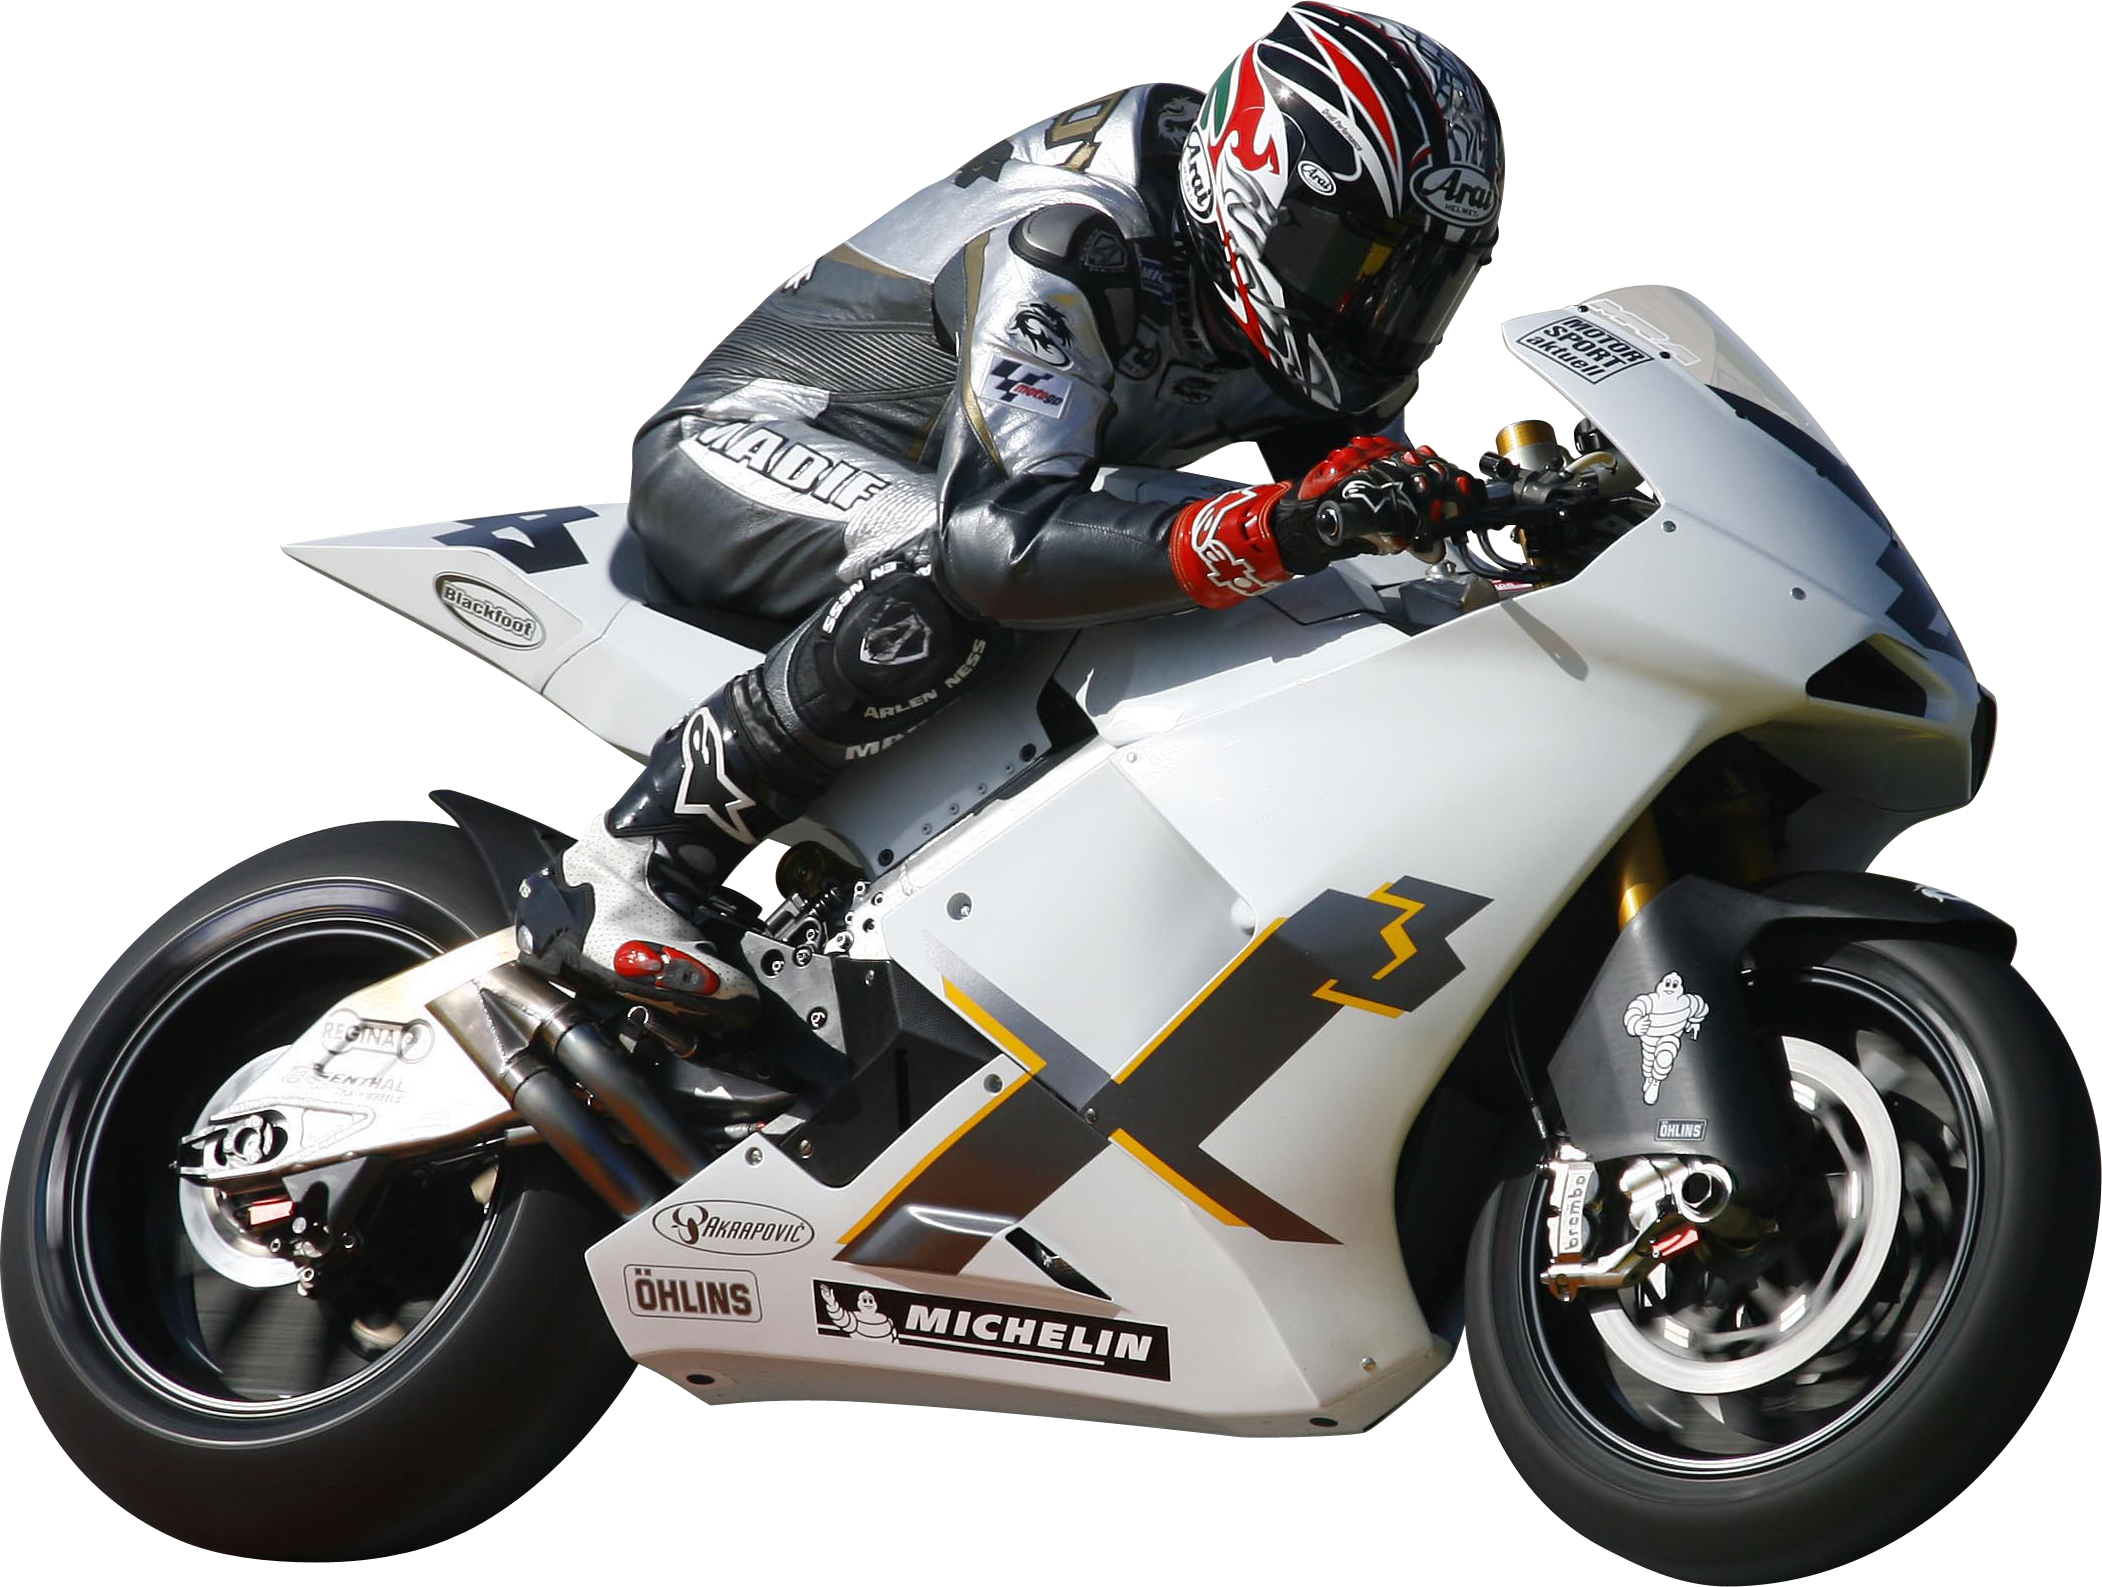 Motorcycle Png image #20321 - Motorcycle PNG